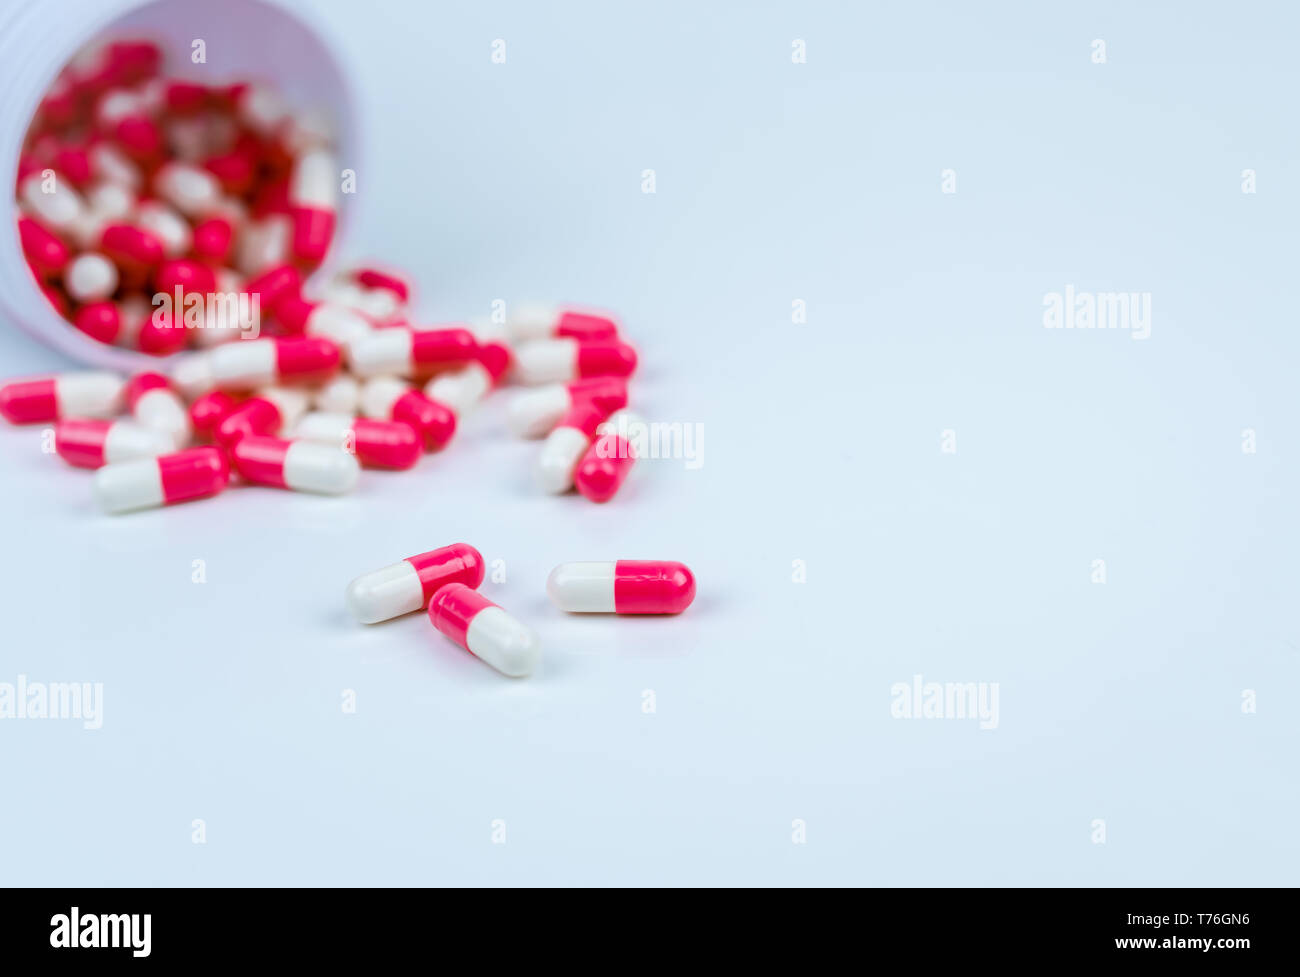 Pink and white capsules pill spilled out from white plastic bottle container. Global healthcare concept. Antibiotics drug resistance. Antimicrobial Stock Photo